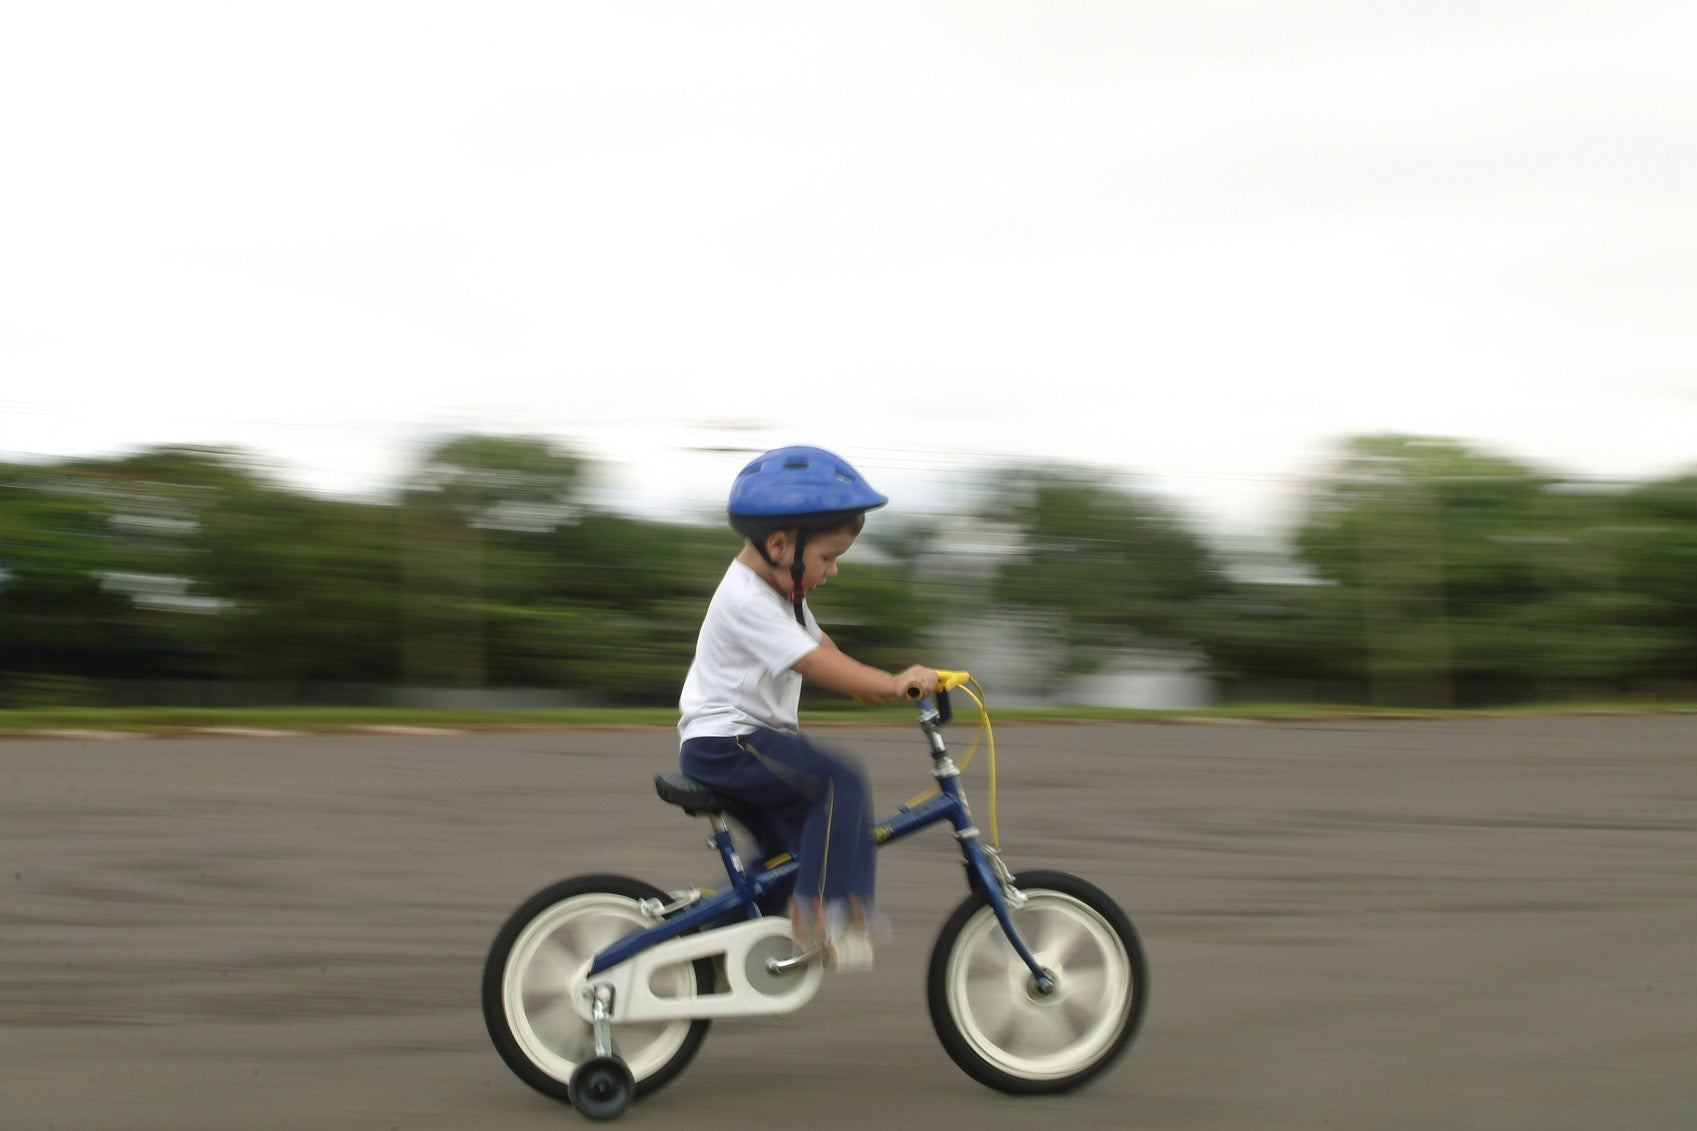 young boy riding biycle